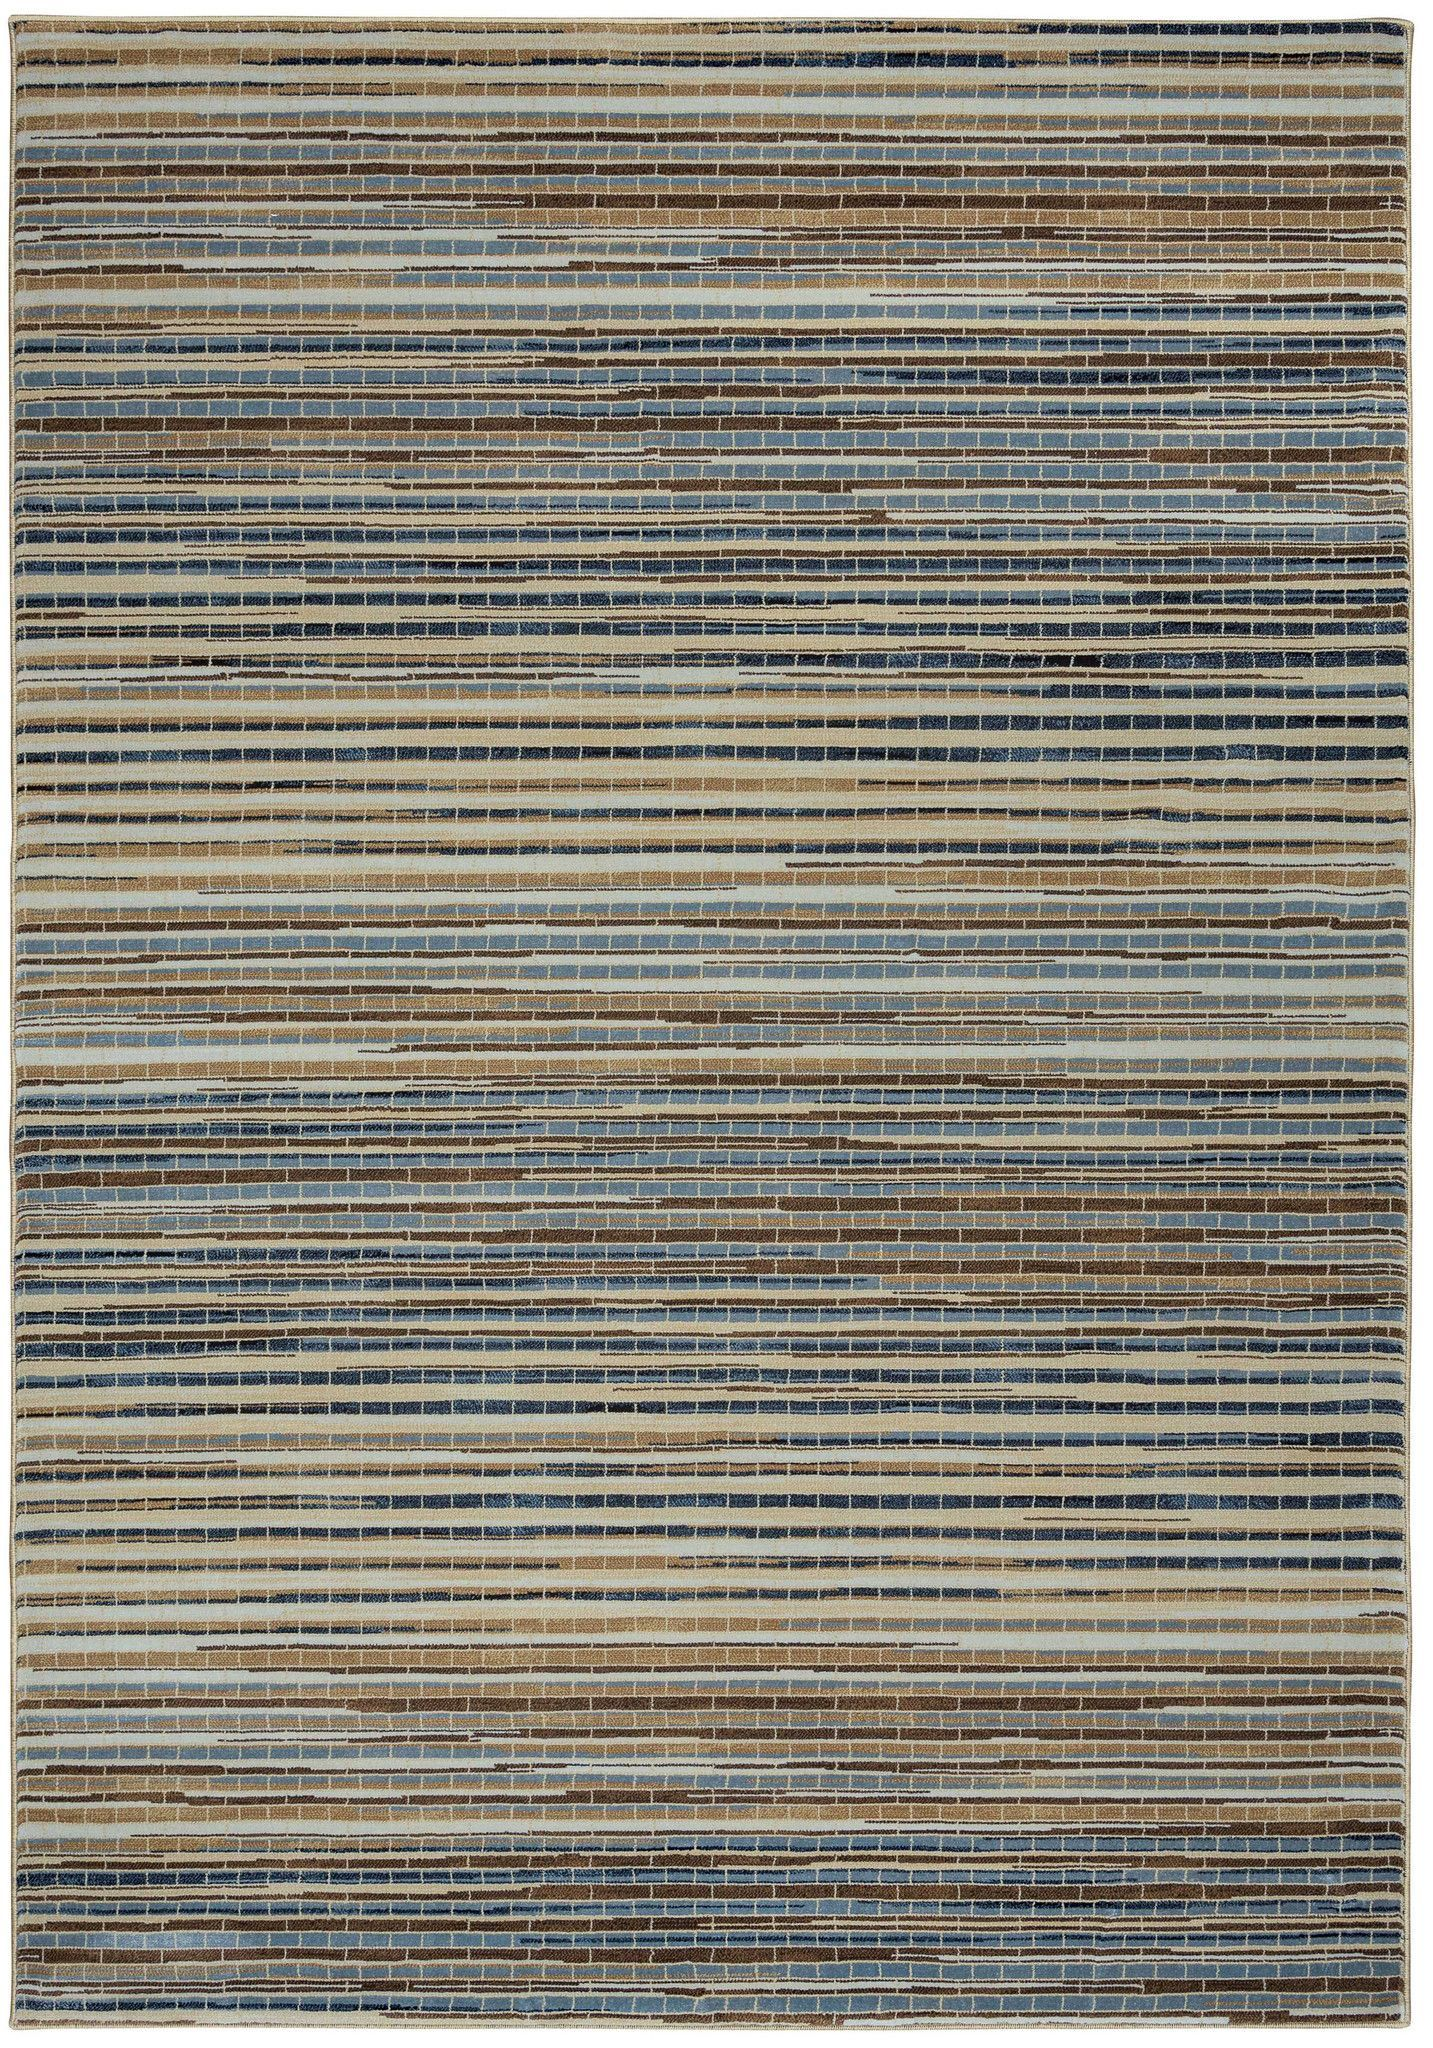 - description - specifications - warranty This diverse collection spans the design spectrum from basic geometric to ultra-modern abstracts. The Bennington collection is power-loomed from 100% heat-set